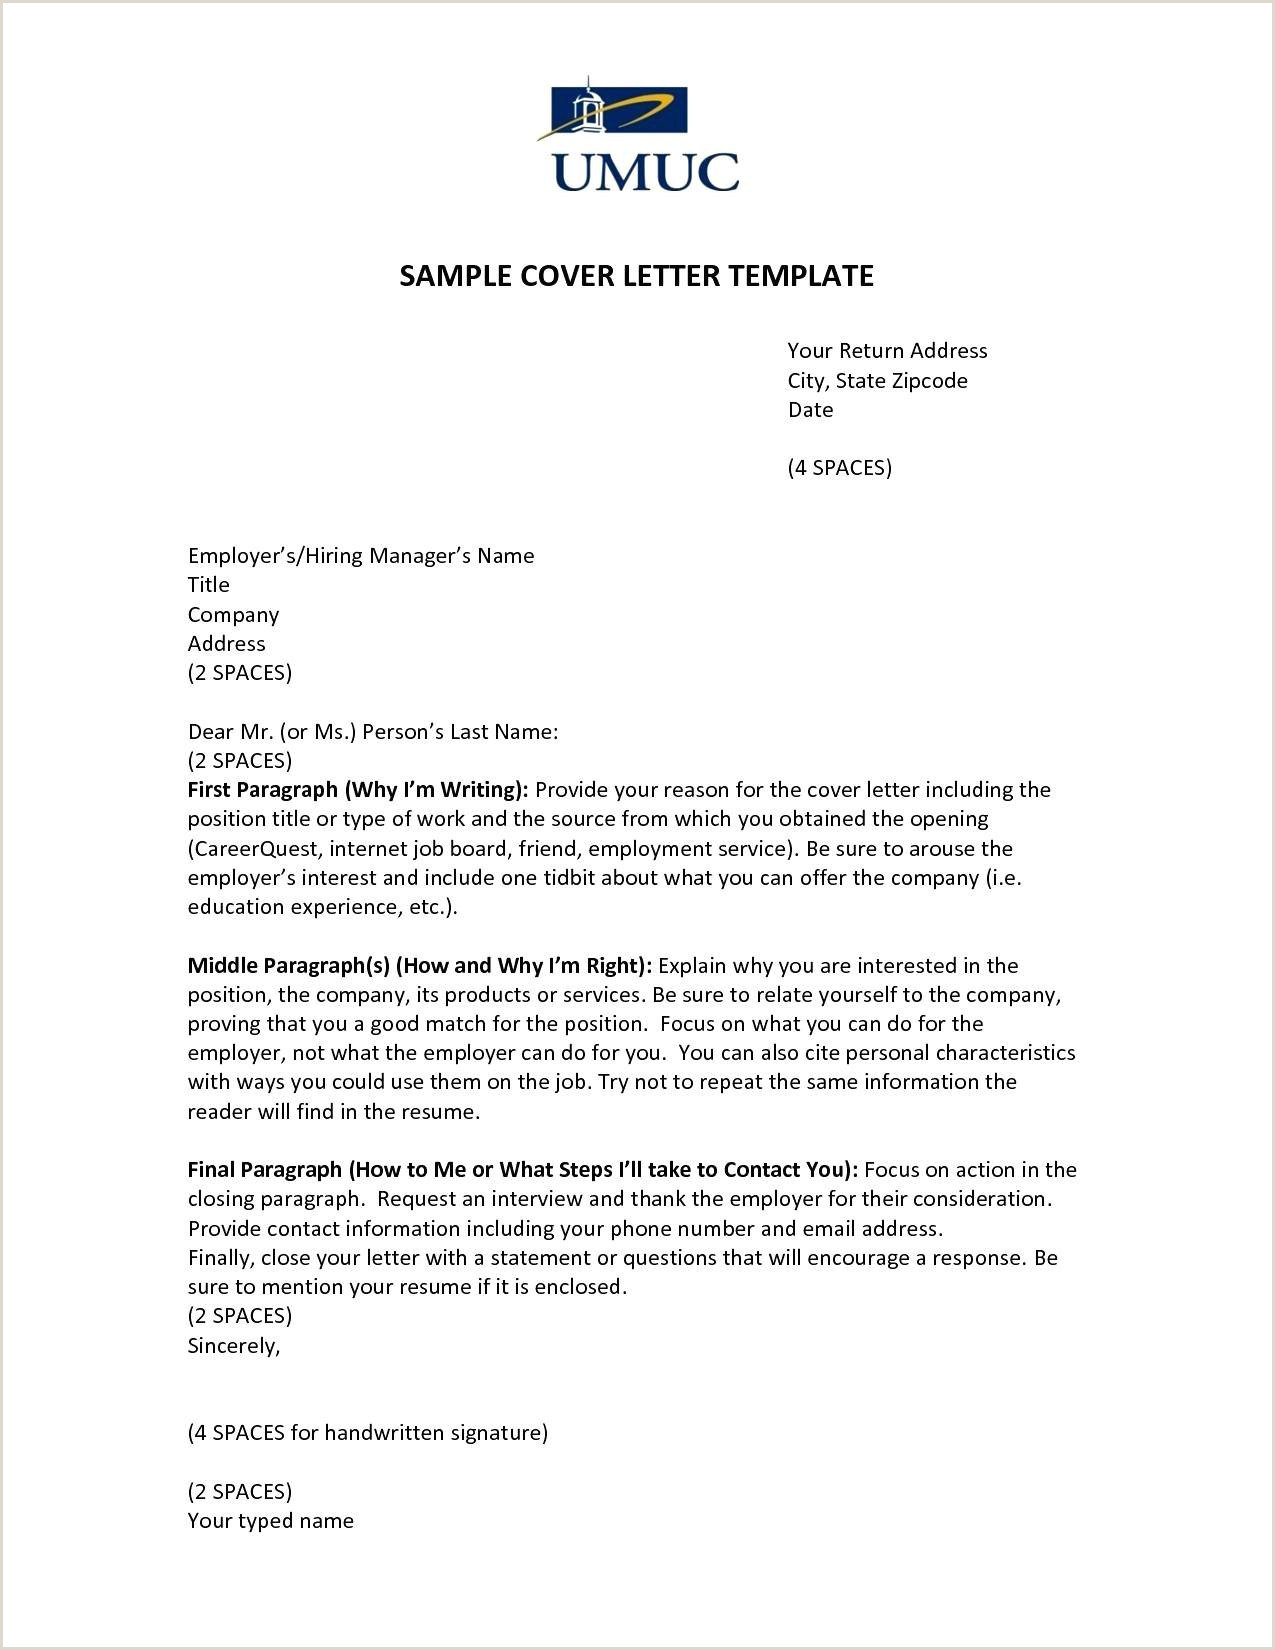 Email Reply for Job Offer 36 Luxury Hire someone to Write A Cover Letter S